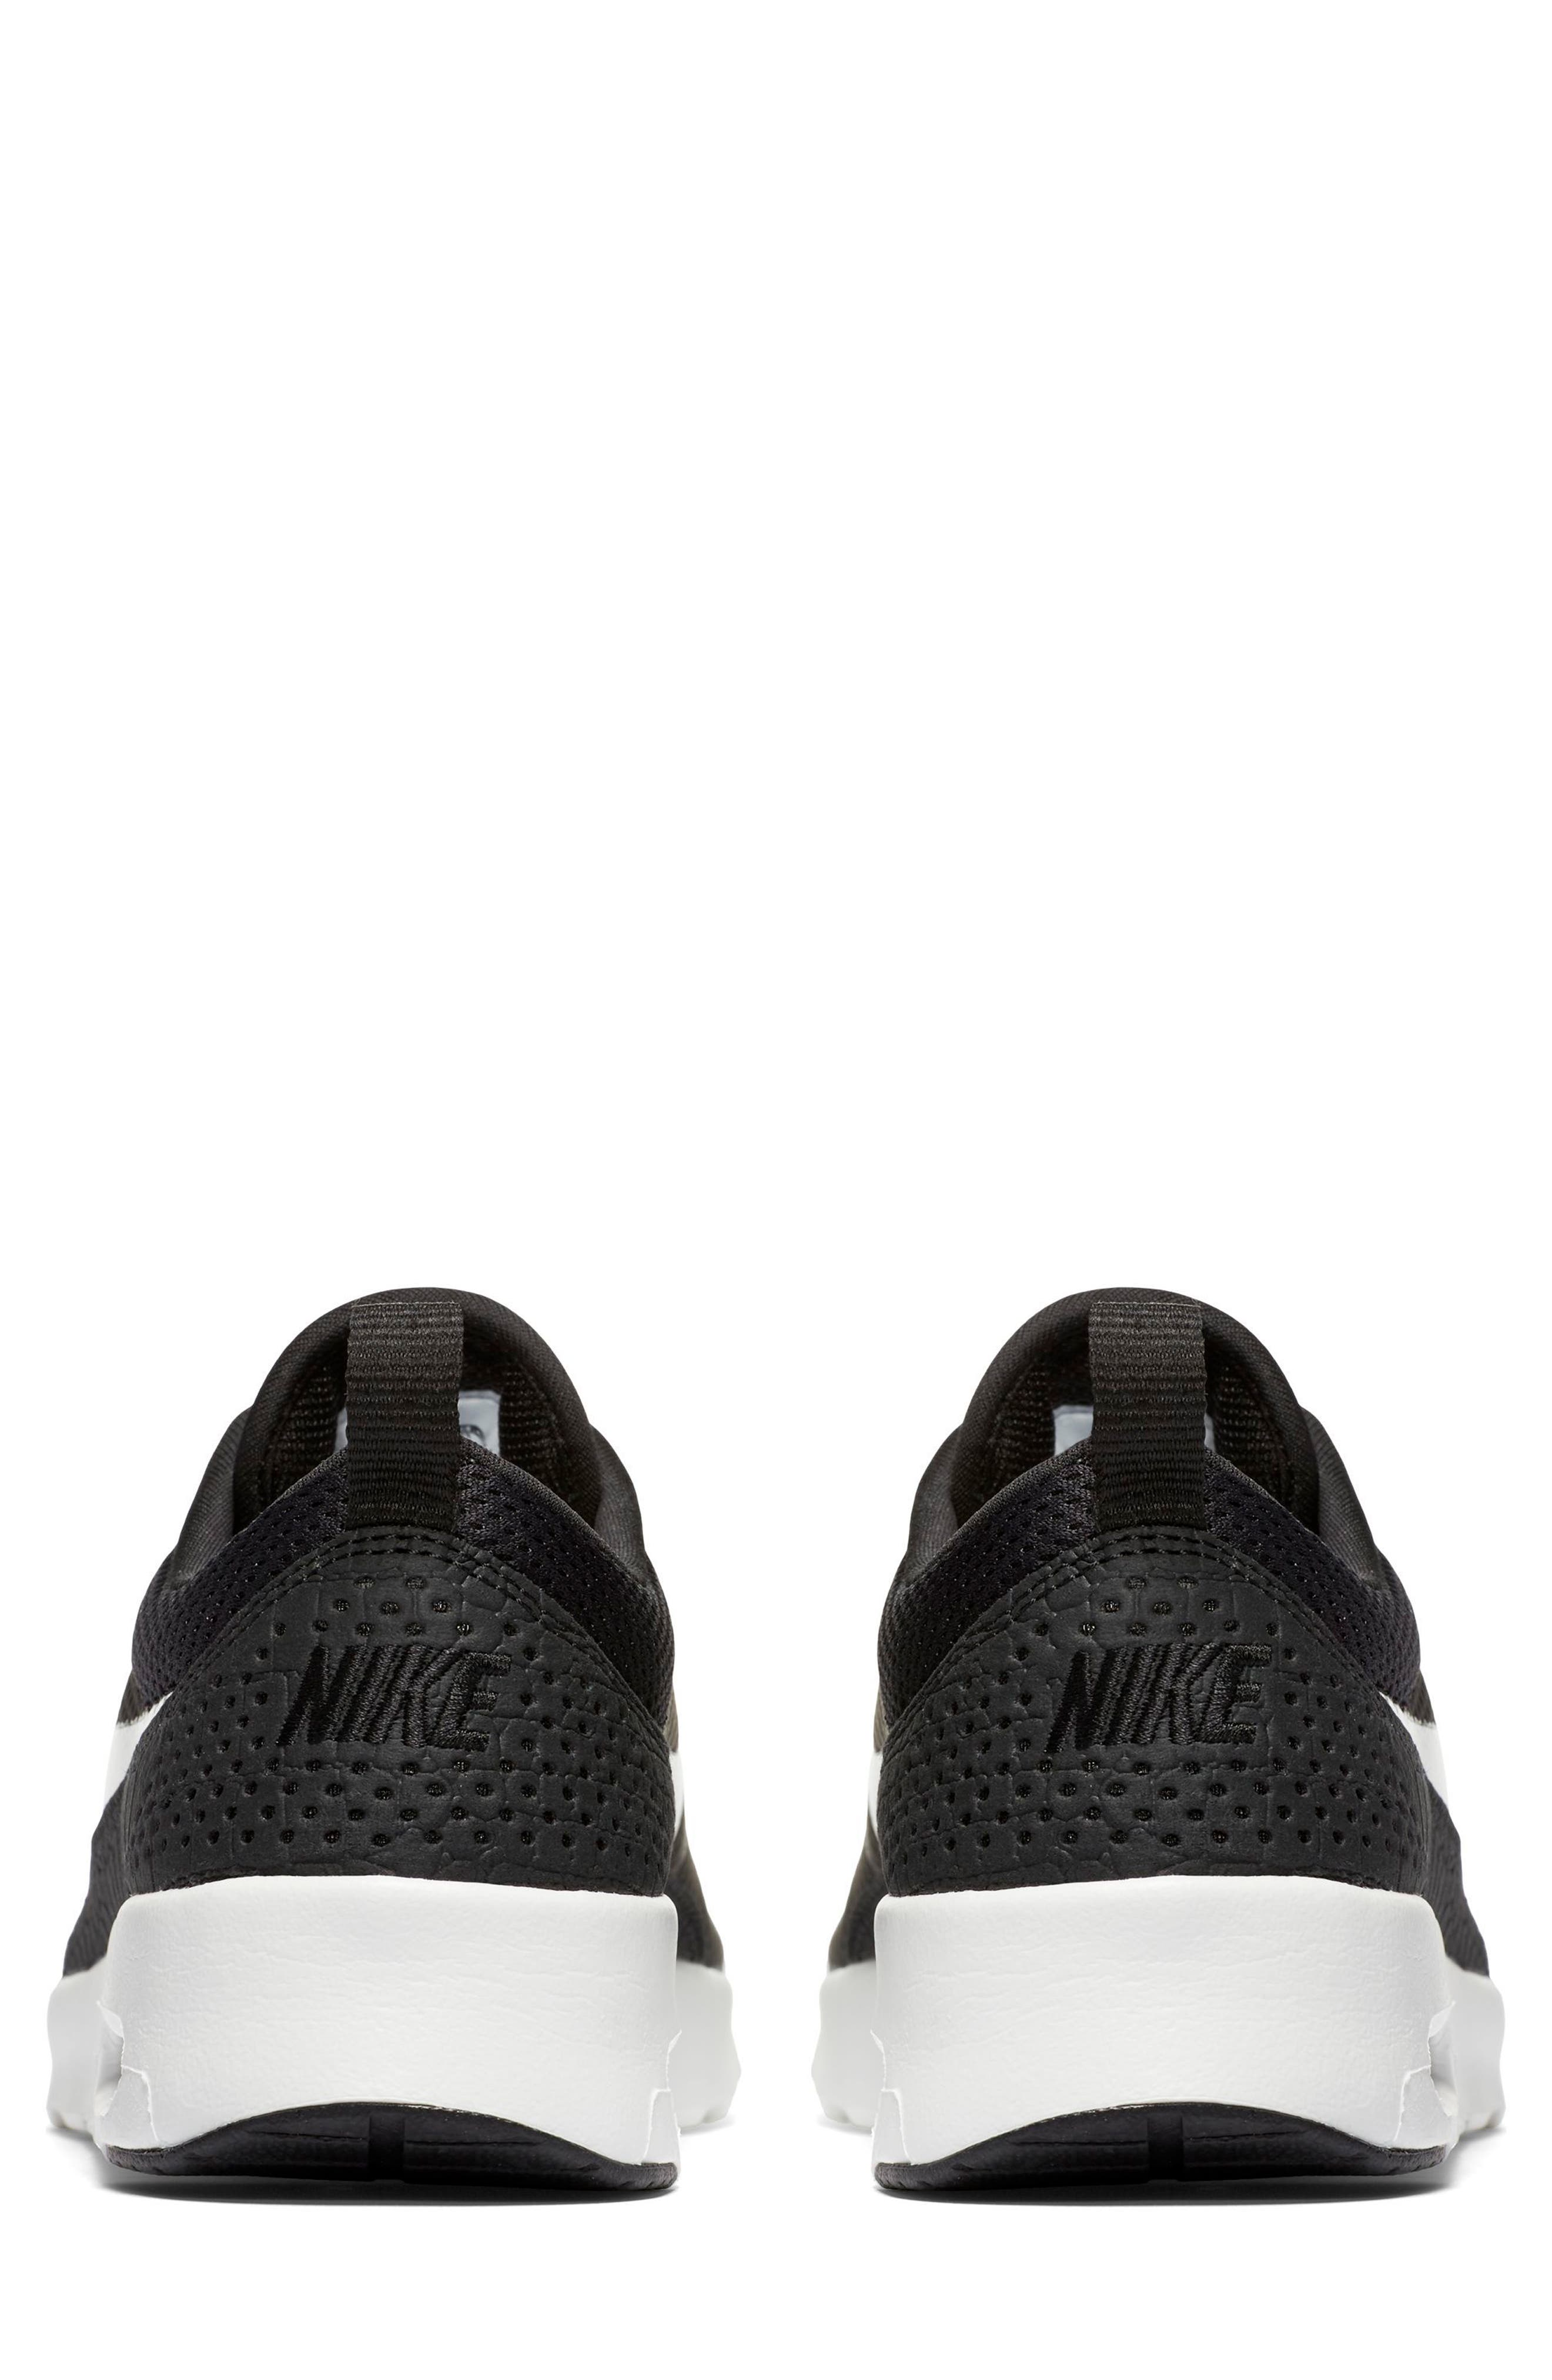 Air Max Thea Sneaker,                             Alternate thumbnail 4, color,                             Black/ Summit White